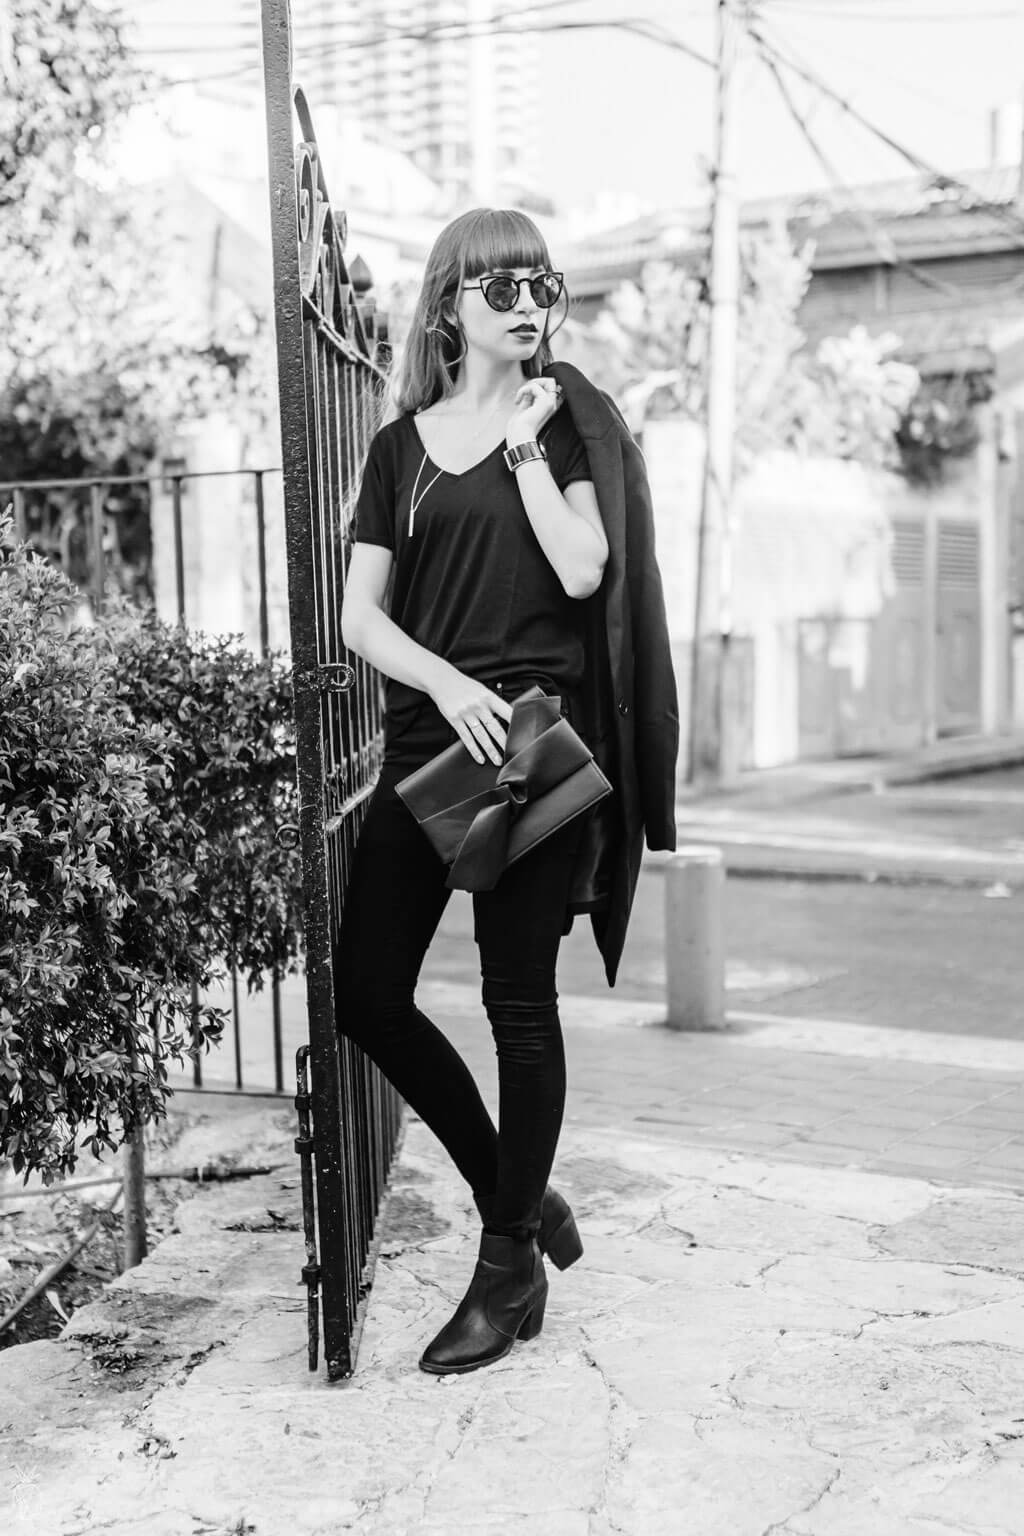 Outfit : Head-to-Toe Black - Outfit inspiration for winter   Fashion minimalist